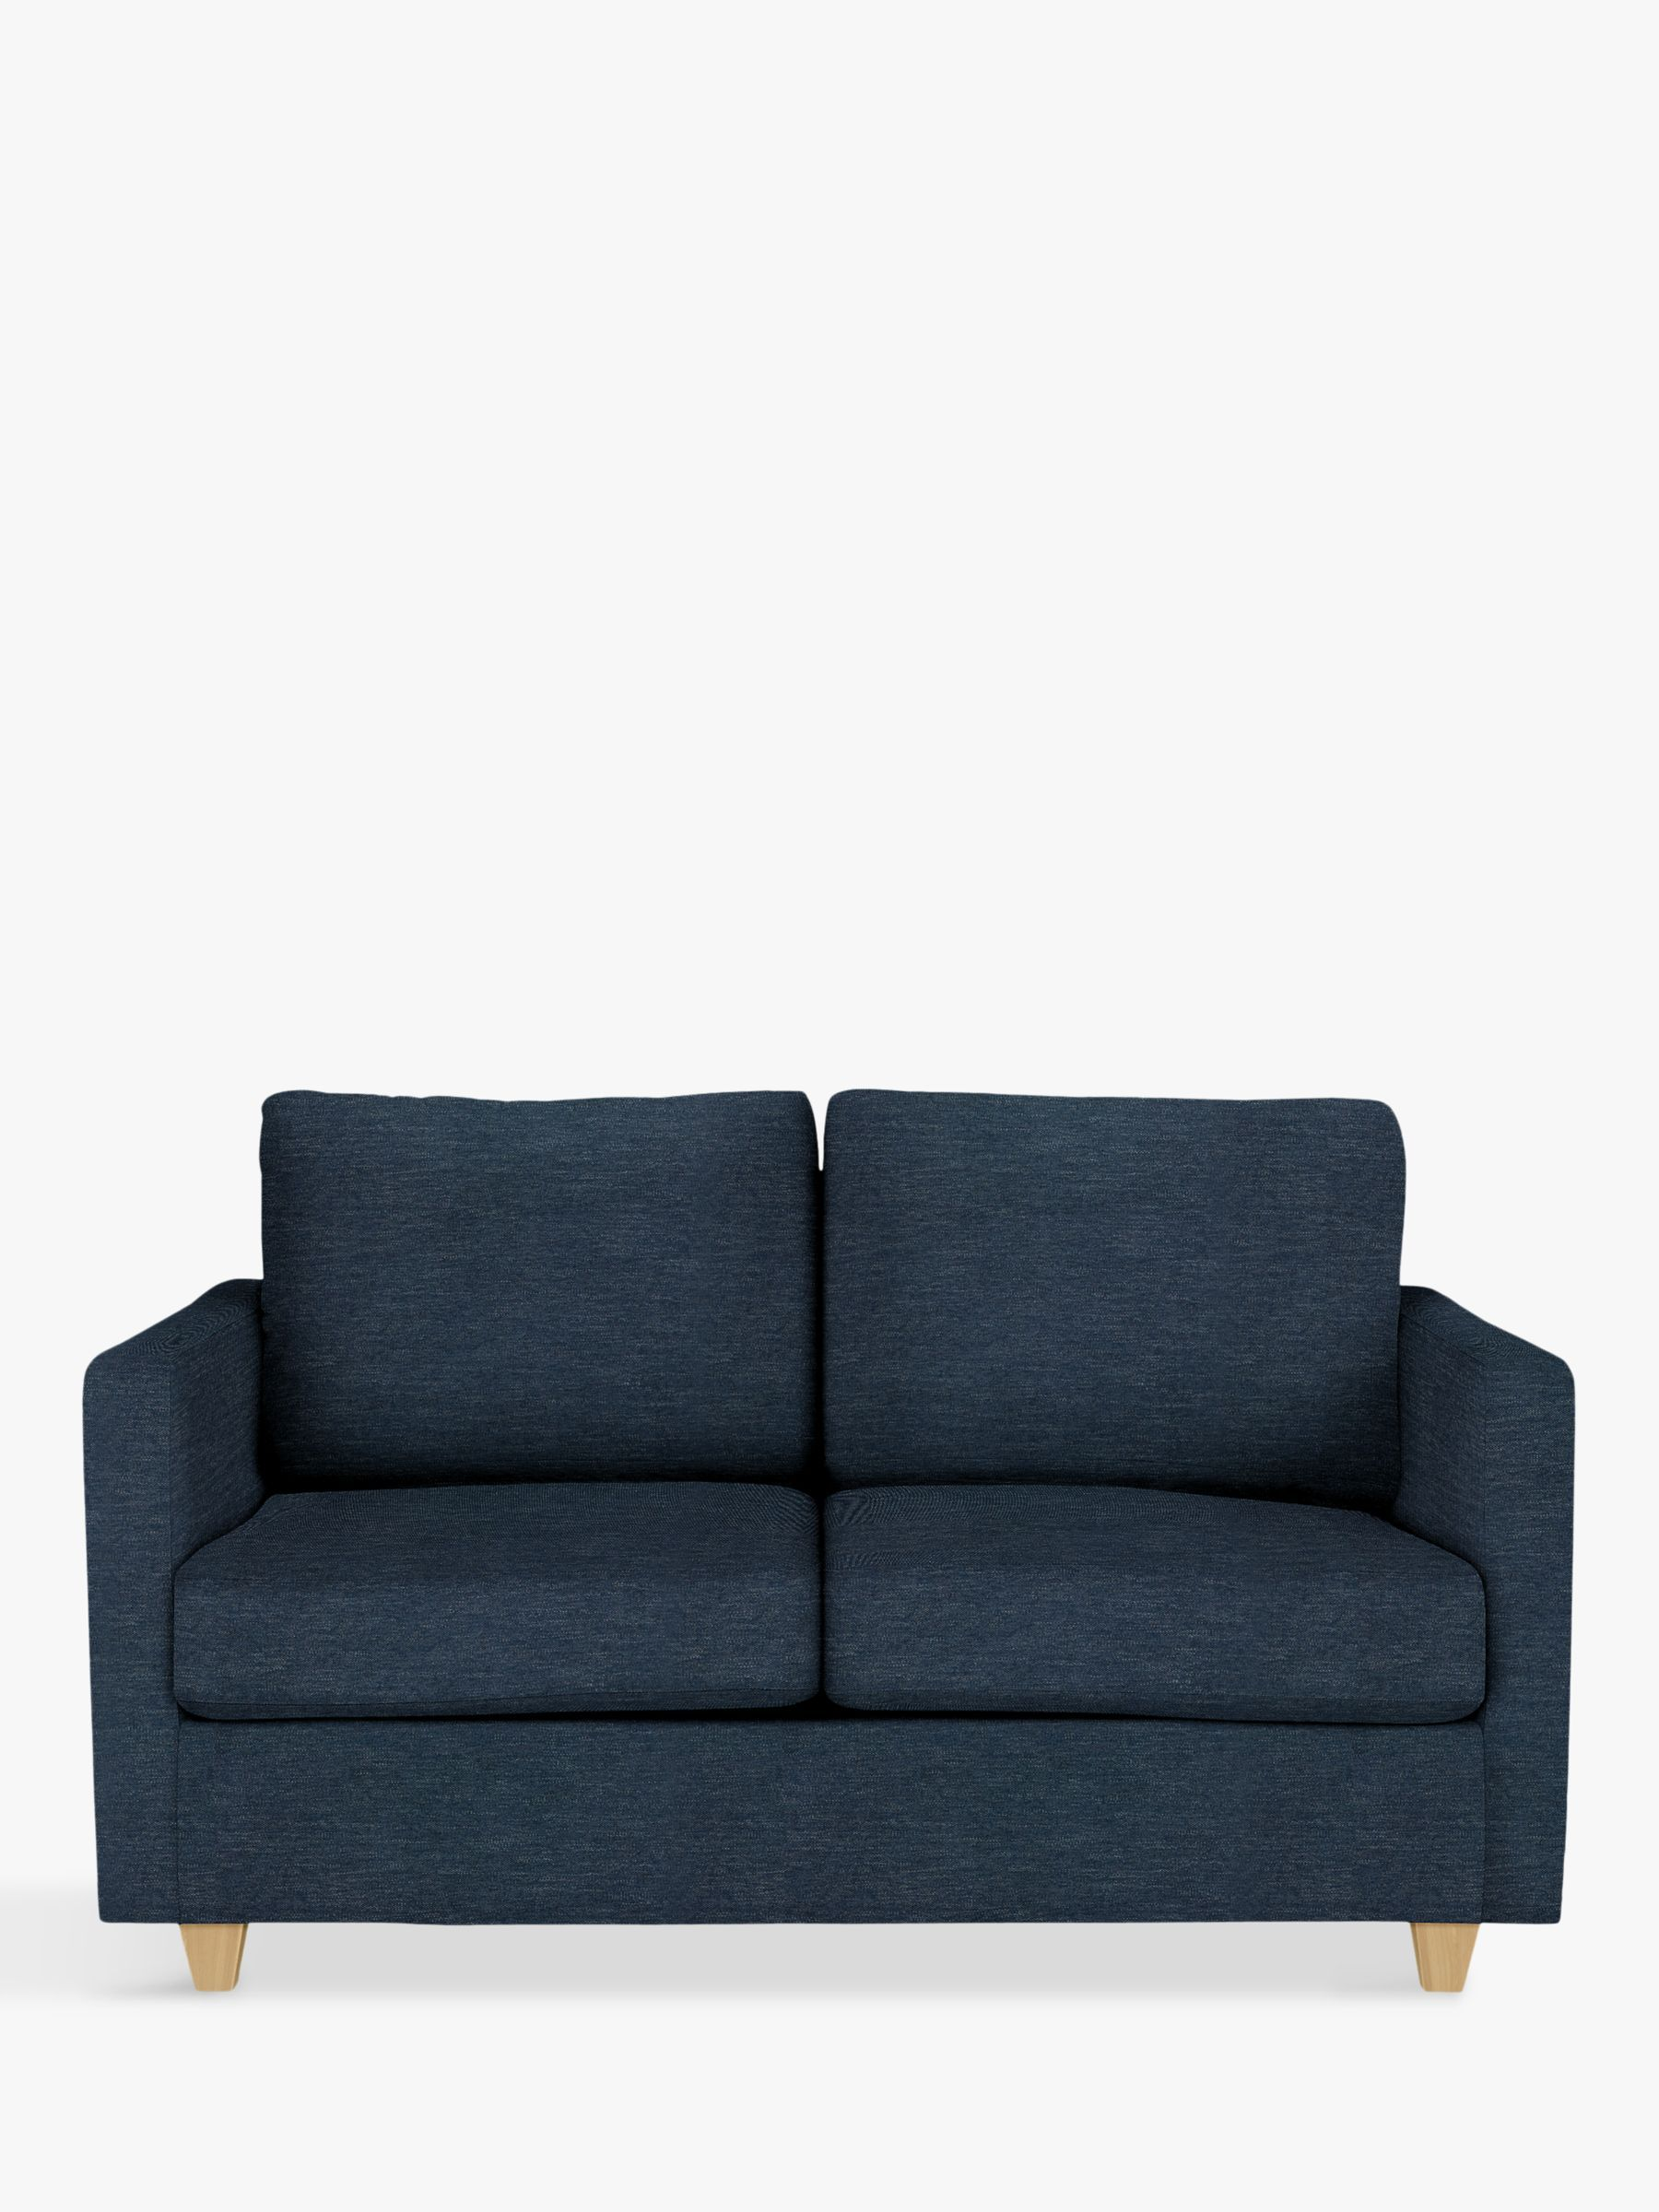 John Lewis Partners Barlow Small 2 Seater Sofa Bed With Pocket Sprung Mattress Erin Midnight 2 Seater Sofa Sofa Bed Sofa